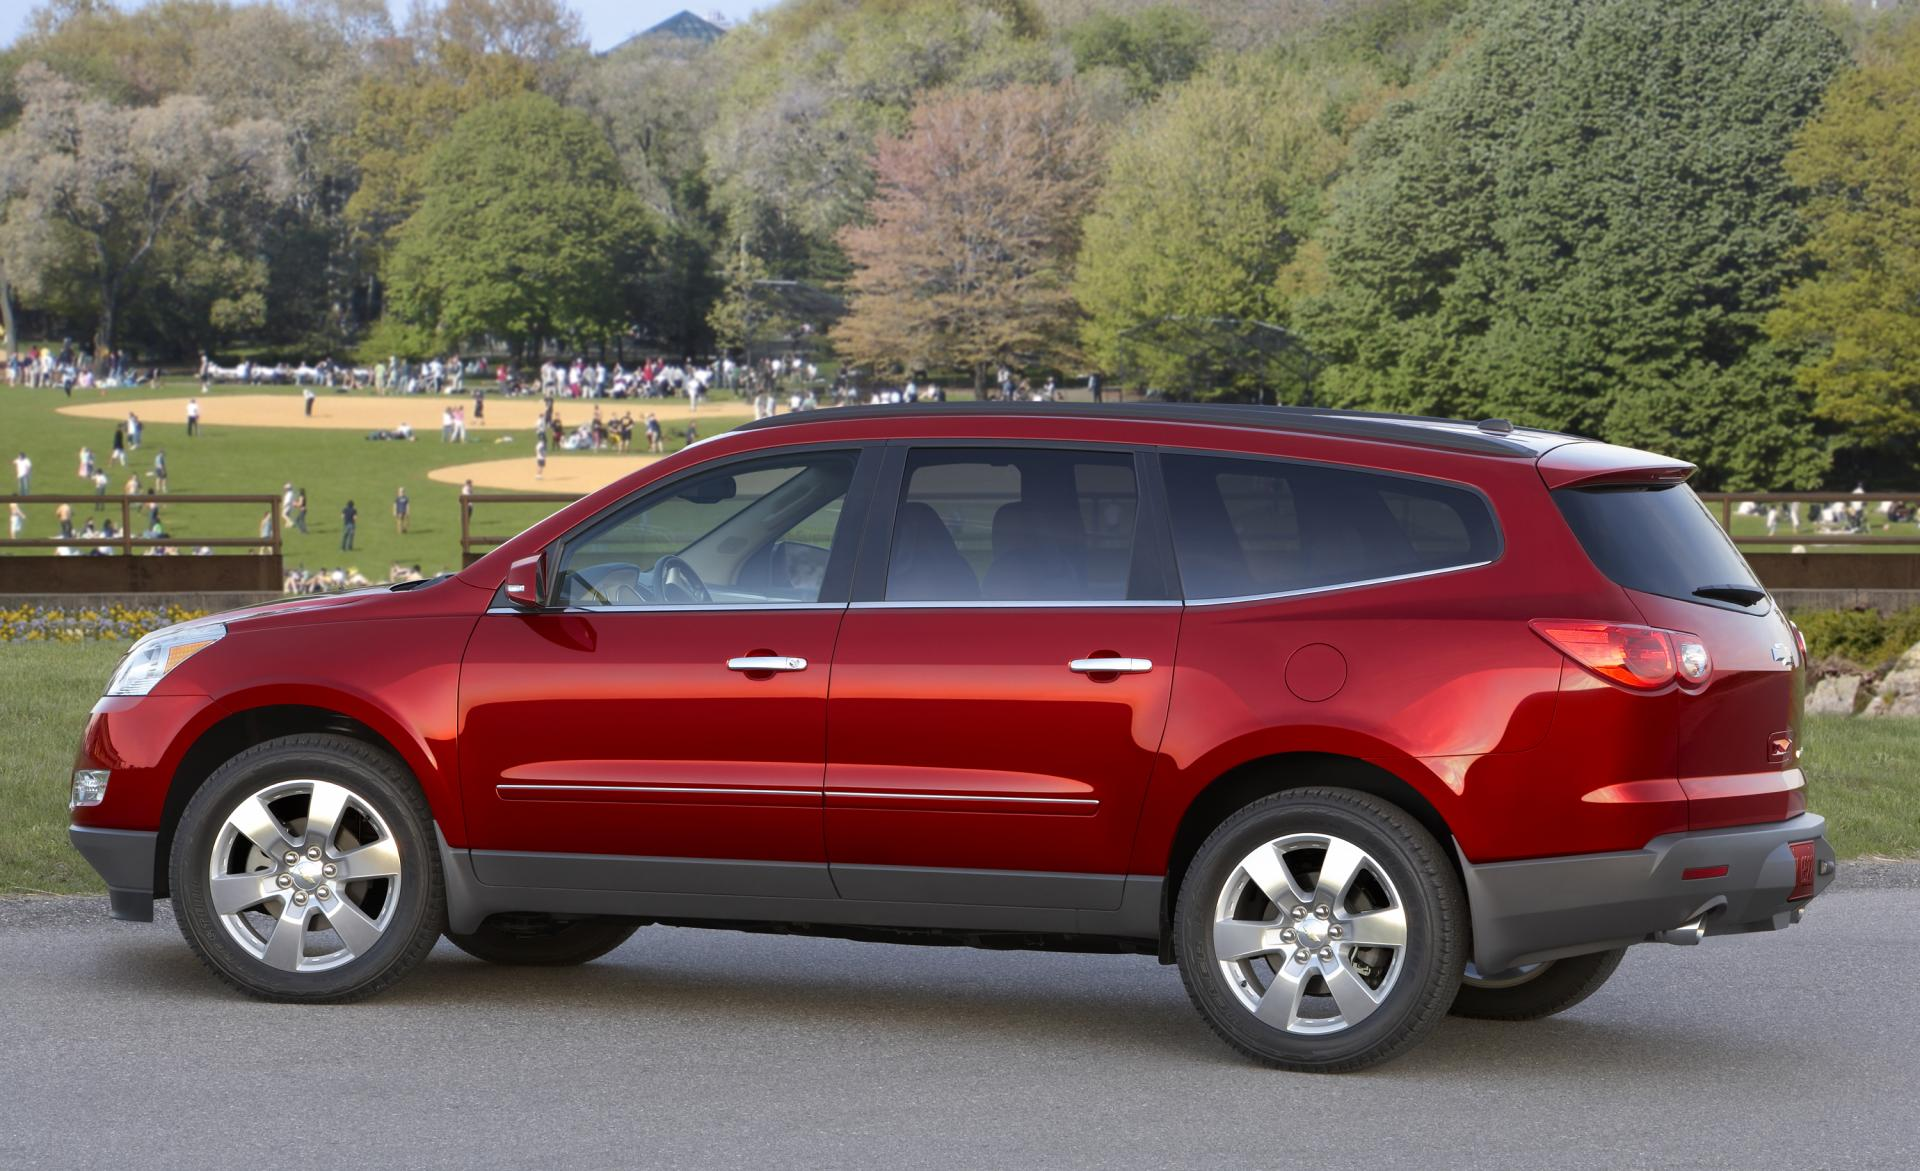 2012 chevrolet traverse news and information publicscrutiny Gallery